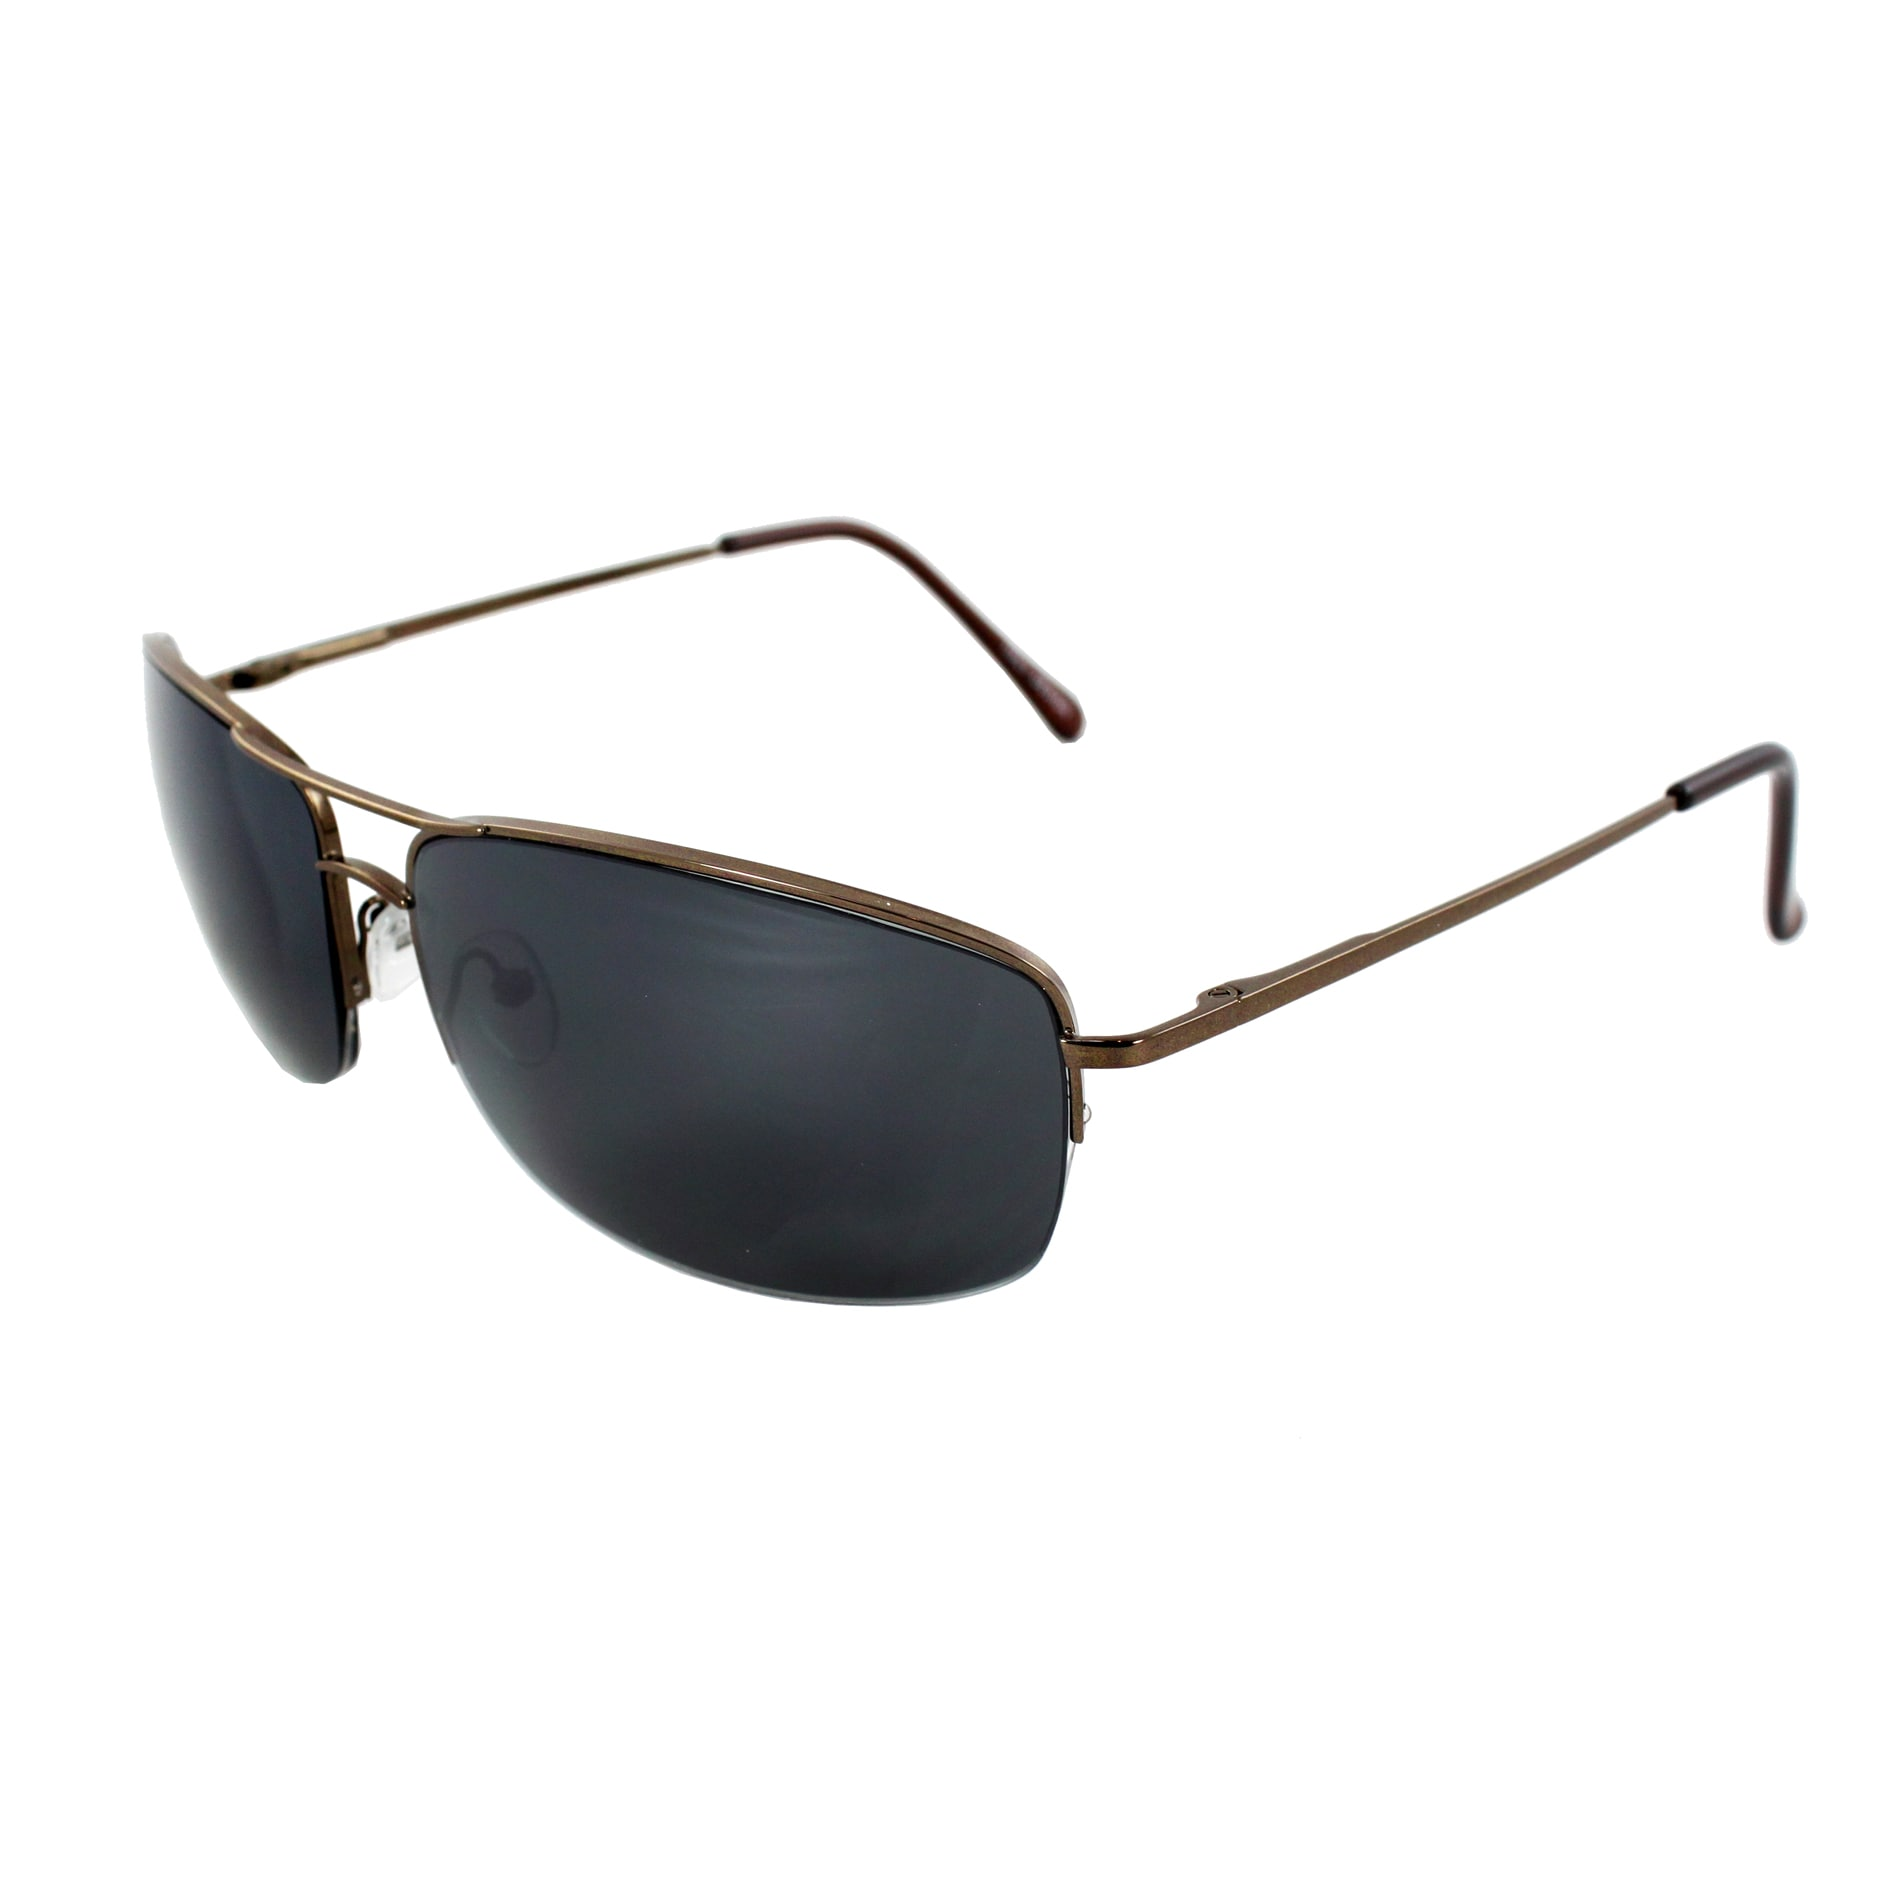 Semi-Rimless Fashion Sunglasses Brown Frame with Black Lenses for Women and Men